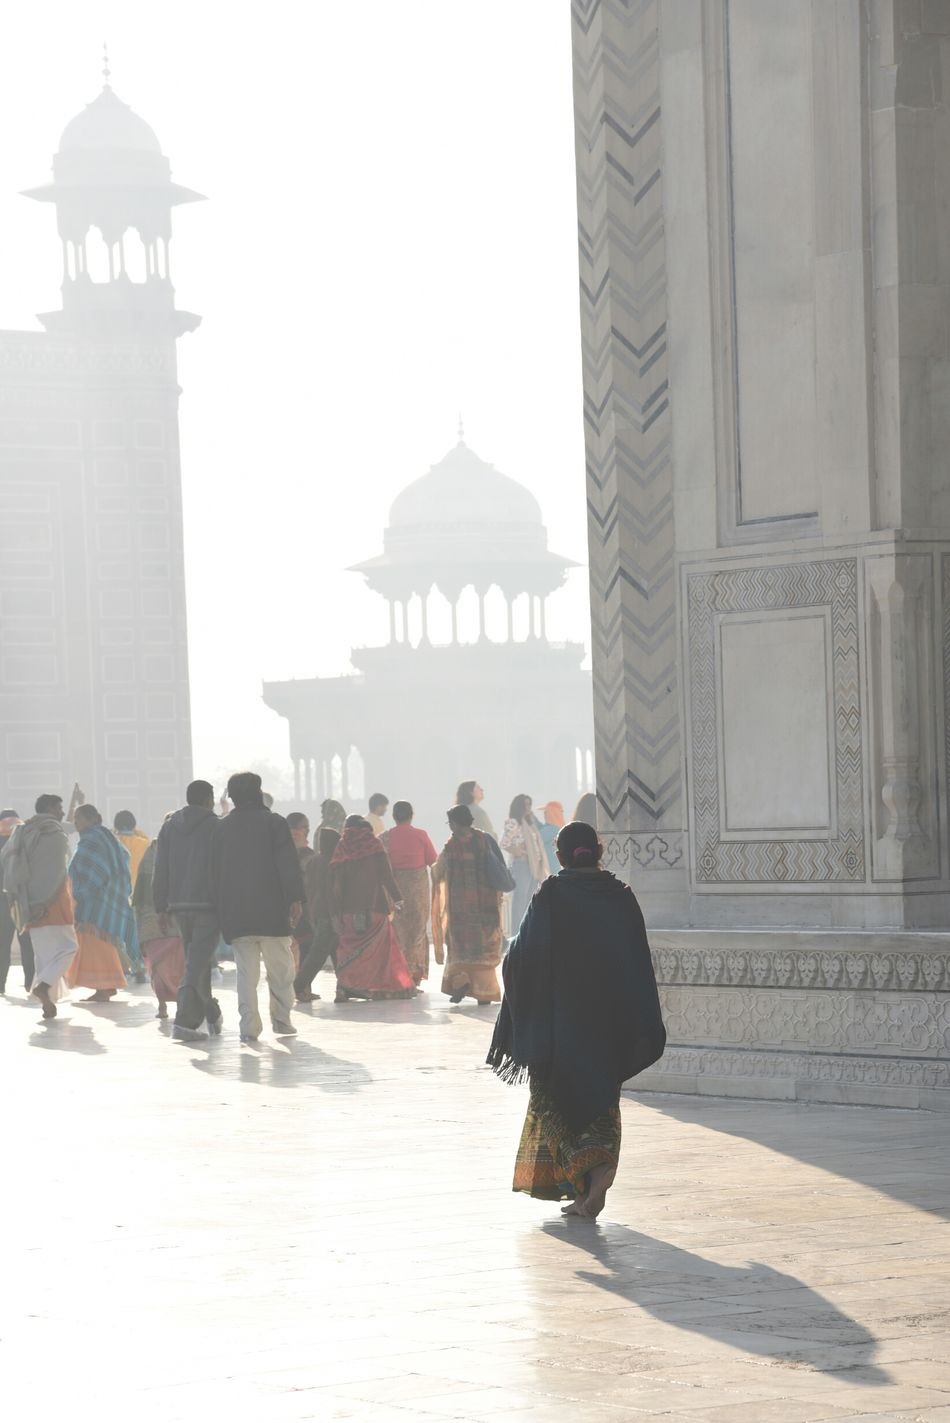 Crowds of visitors early morning at Taj Mahal, Agra Silhouette Built Structure City Rear View Adults Only People Adult Only Men Men Real People Outdoors Day One Person Architecture One Man Only Indiapictures India EyeEm New Here Arts Culture And Entertainment World Heritage Architecture Taj Mahal, Agra Taj Mahal Sightseeing